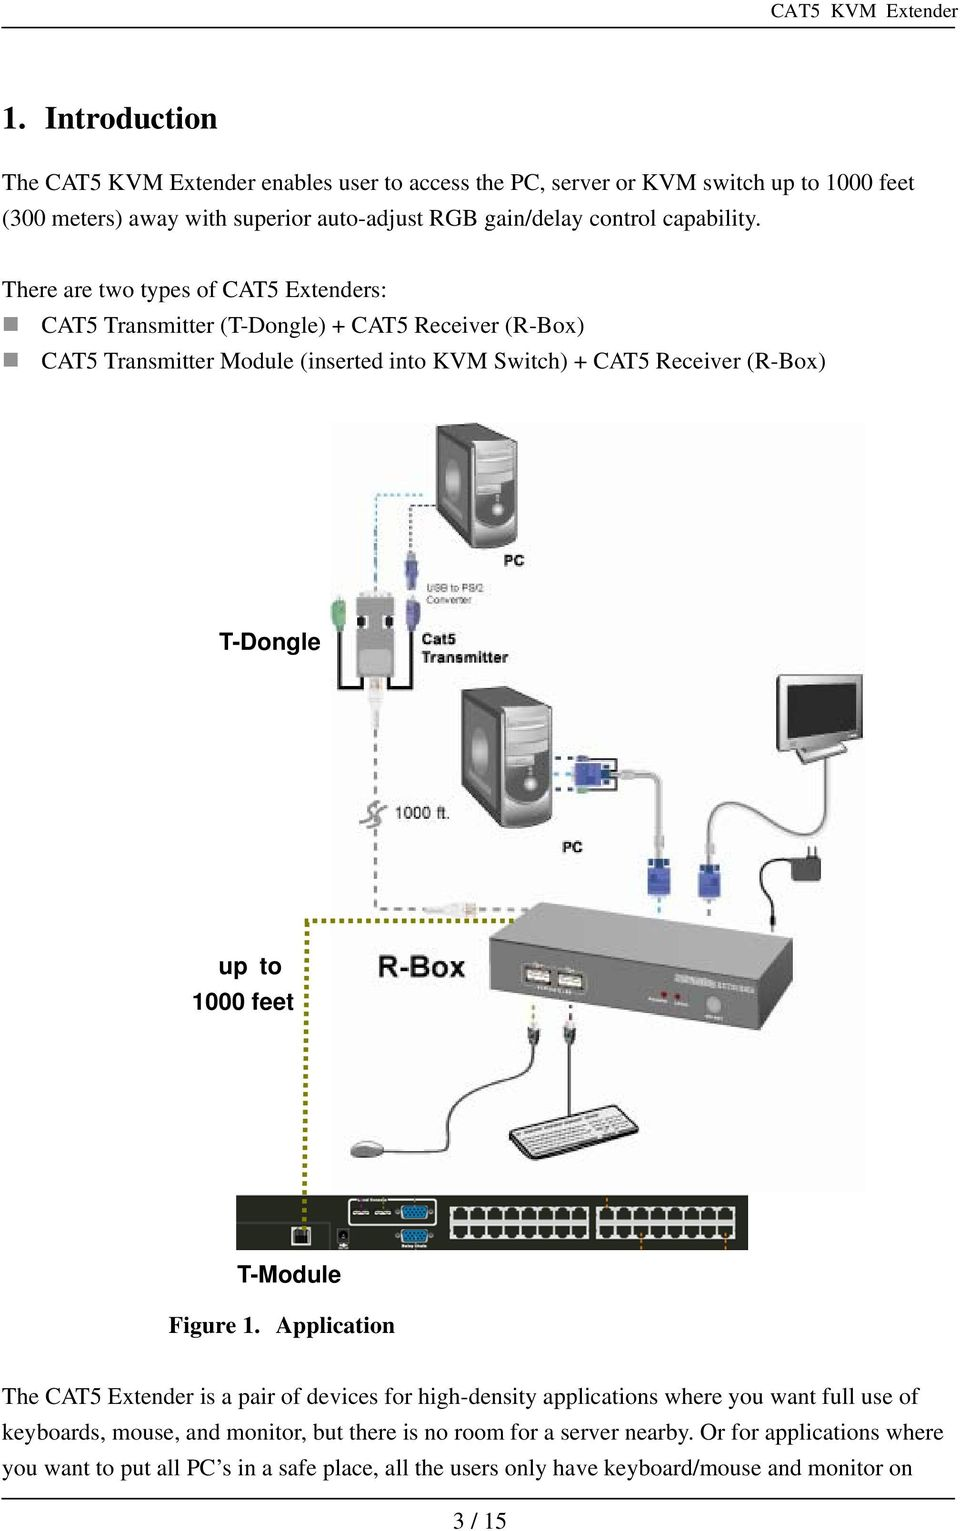 There are two types of CAT5 Extenders: CAT5 Transmitter (T-Dongle) + CAT5 Receiver (R-Box) CAT5 Transmitter Module (inserted into KVM Switch) + CAT5 Receiver (R-Box) T-Dongle